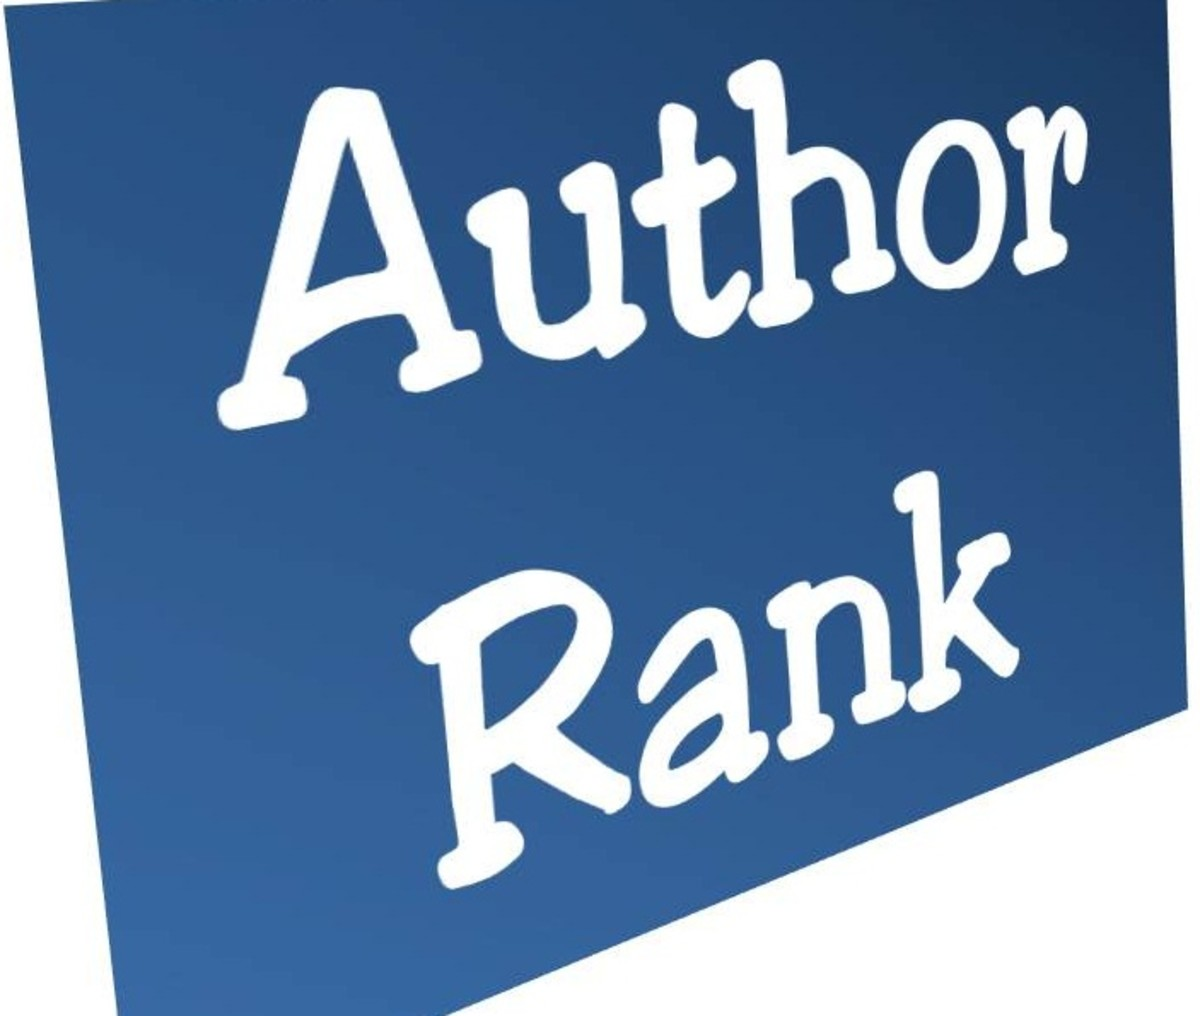 Author Rank is Google's method of ranking authors who contribute content to the internet.